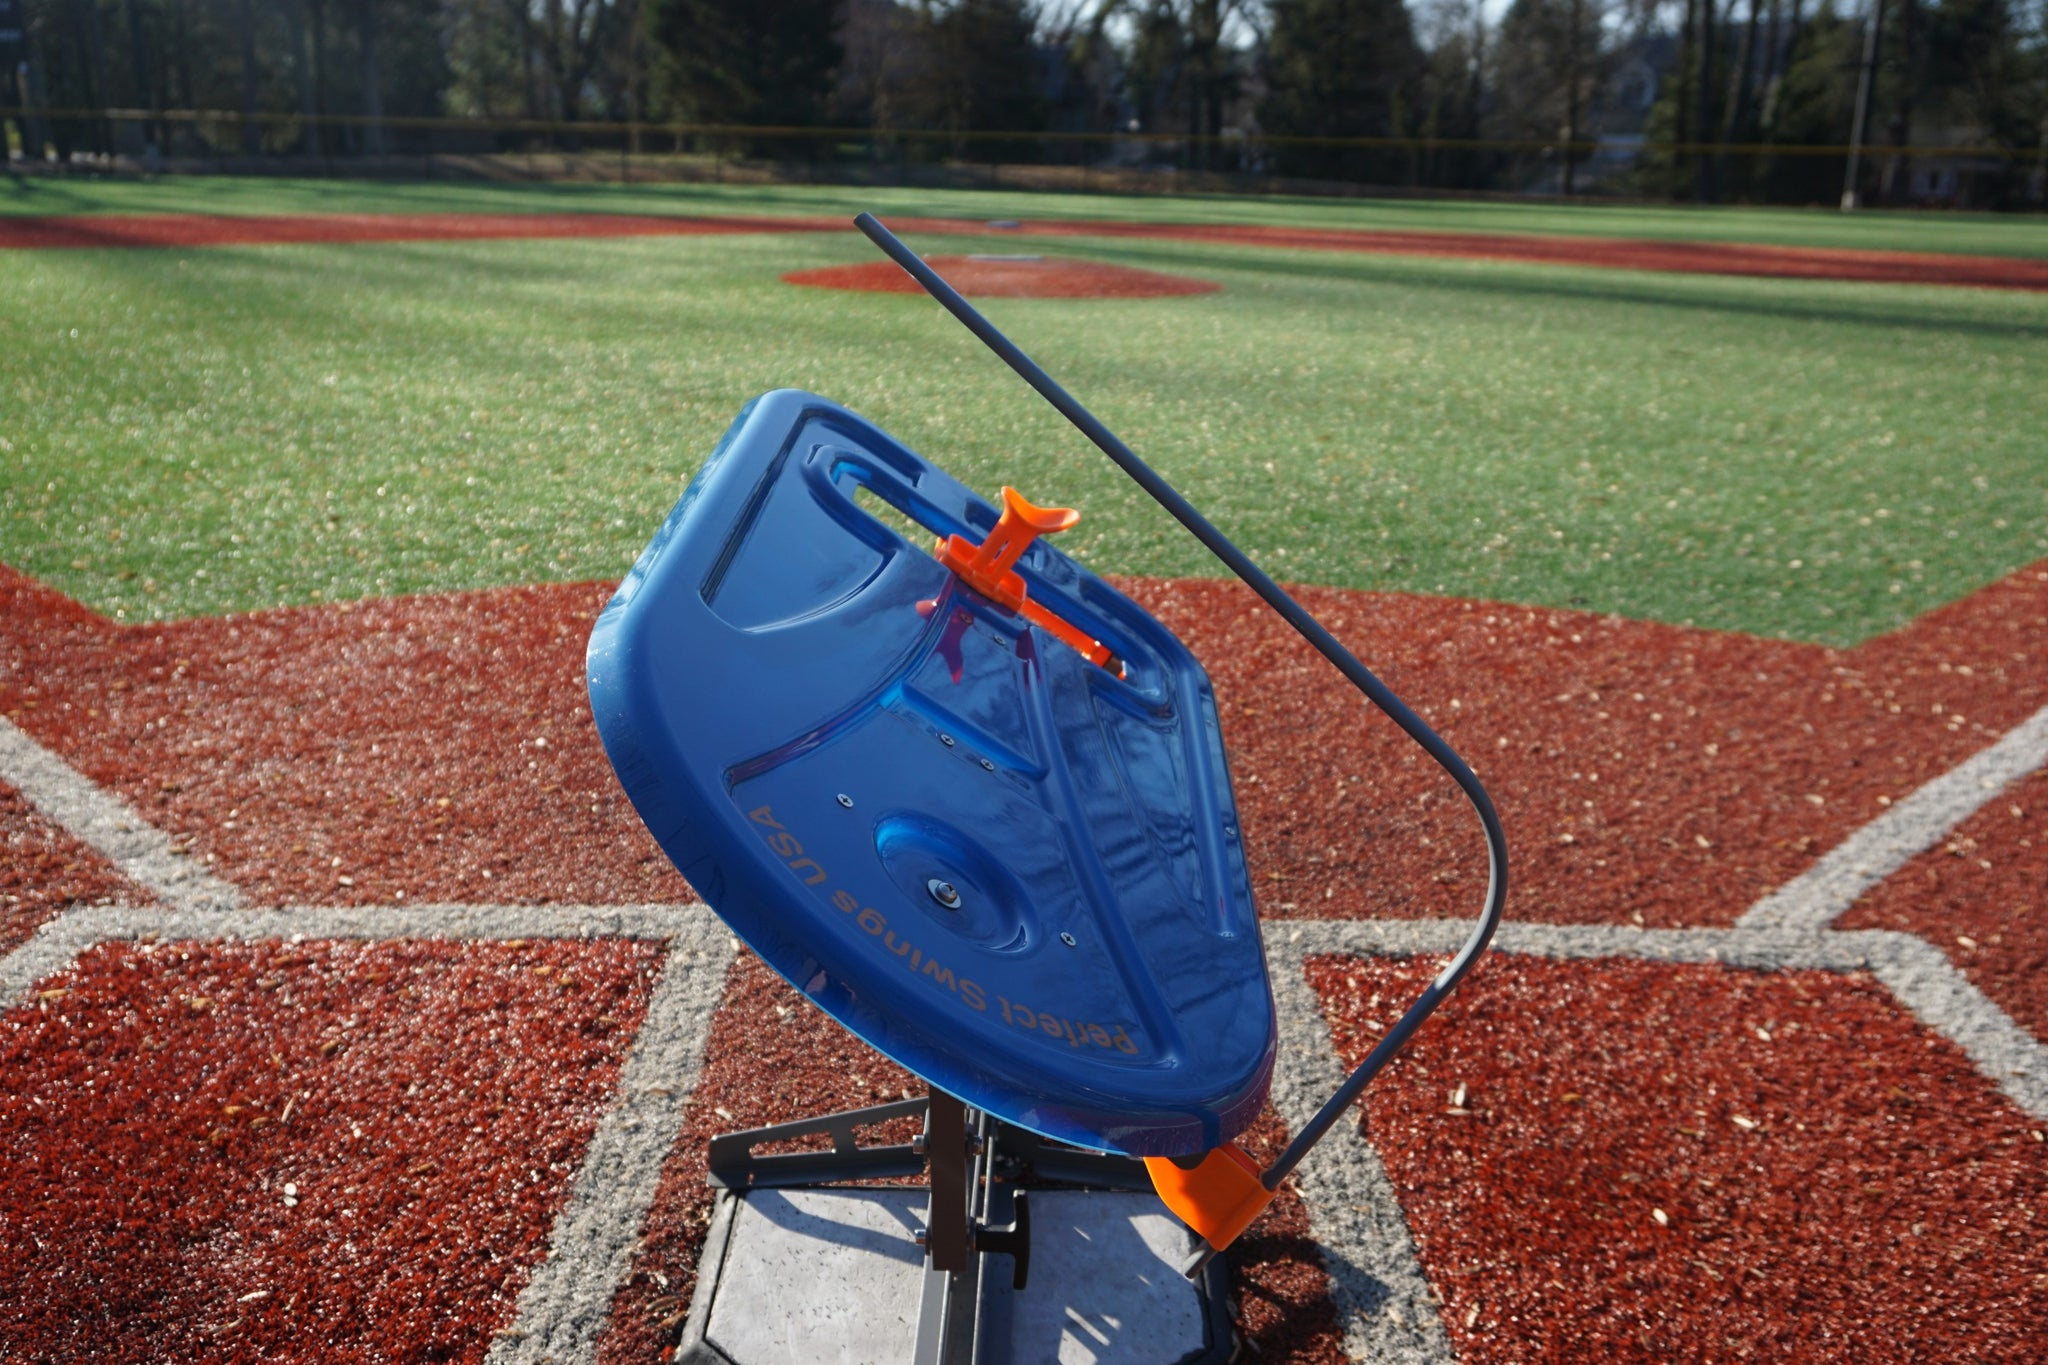 adjustable batting tee for swing training